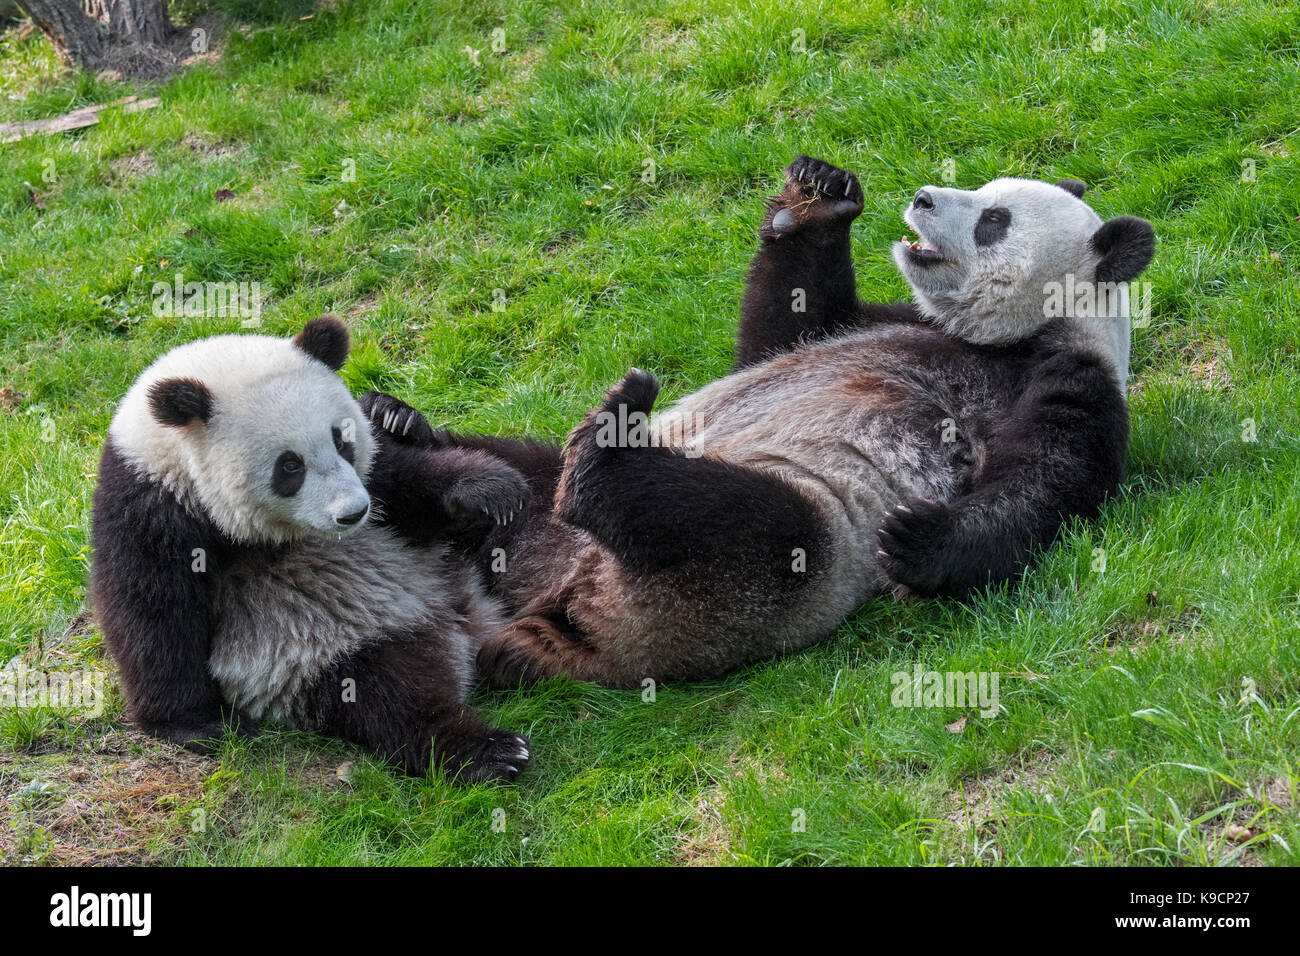 Giant panda (Ailuropoda melanoleuca) female with one-year old cub in zoo - Stock Image